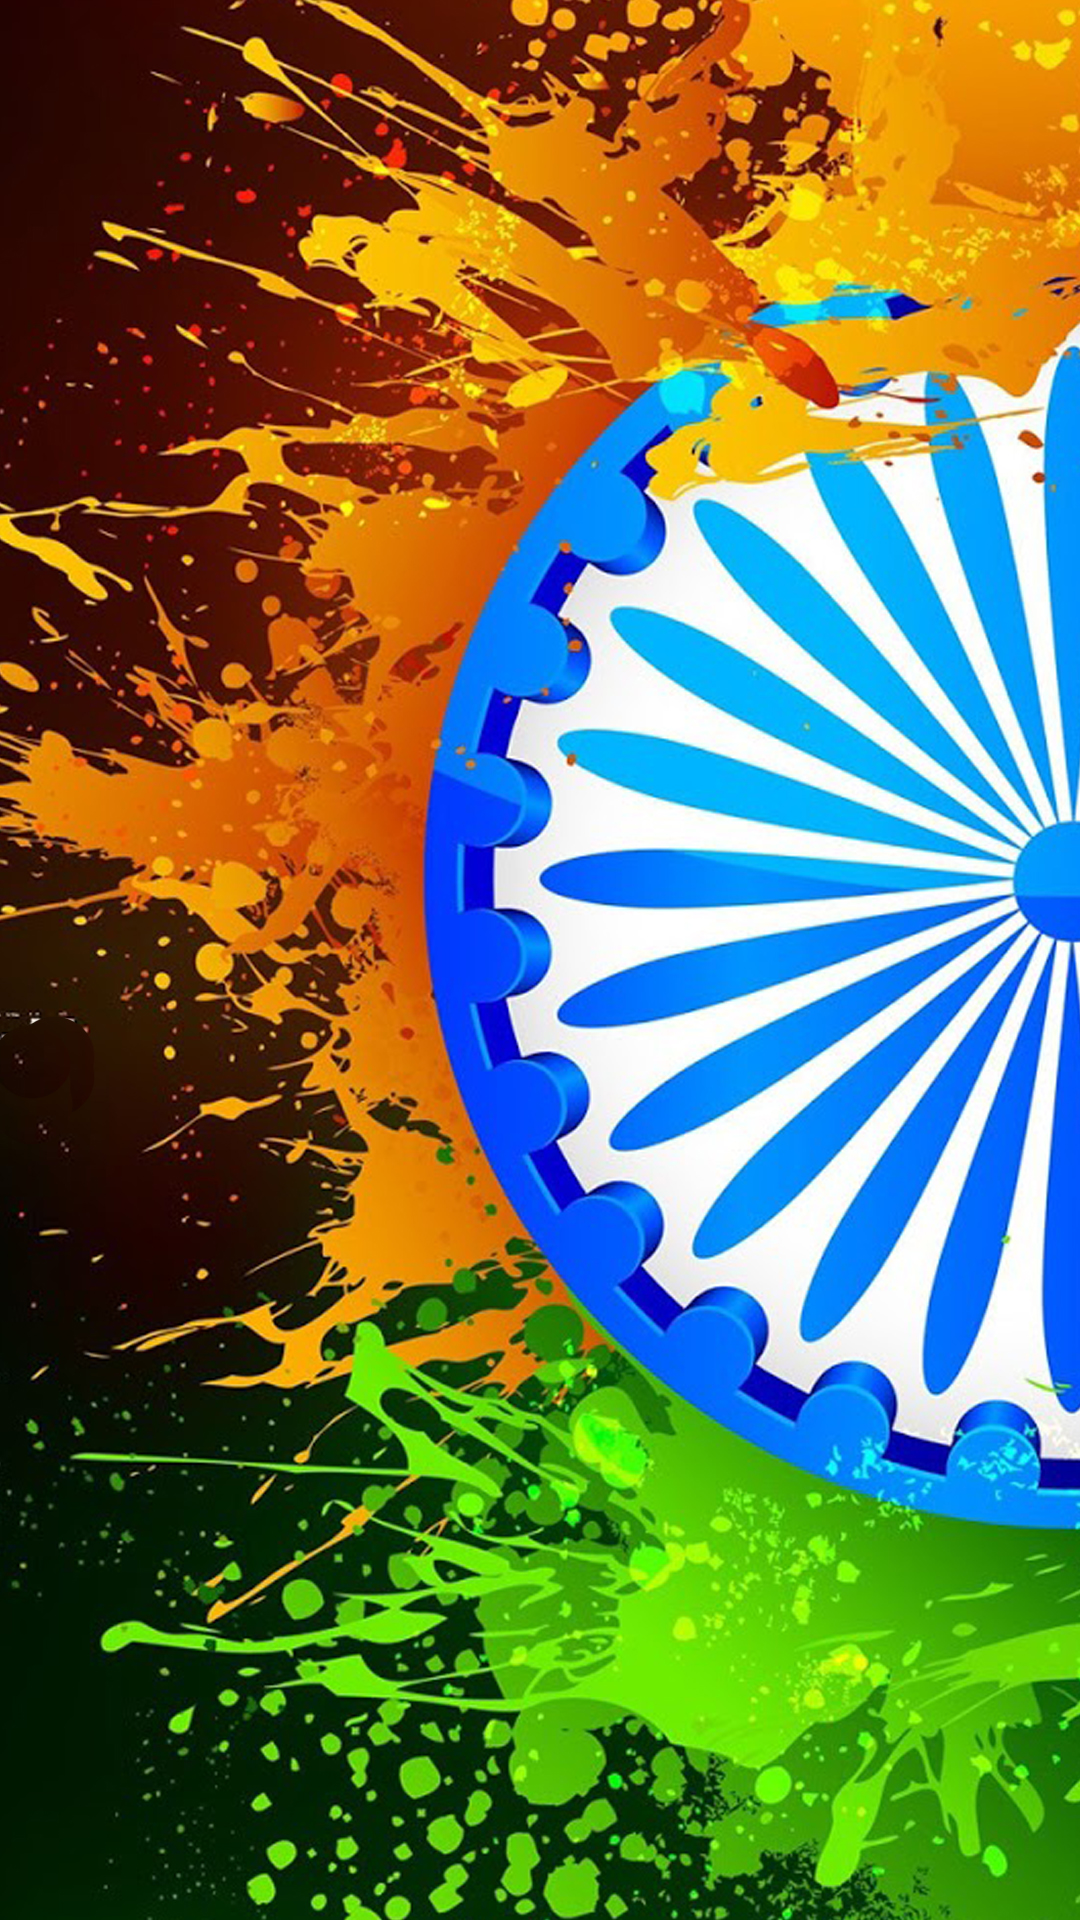 National flag images for whatsapp 04 of 10 with india - Indian flag hd wallpaper for android ...